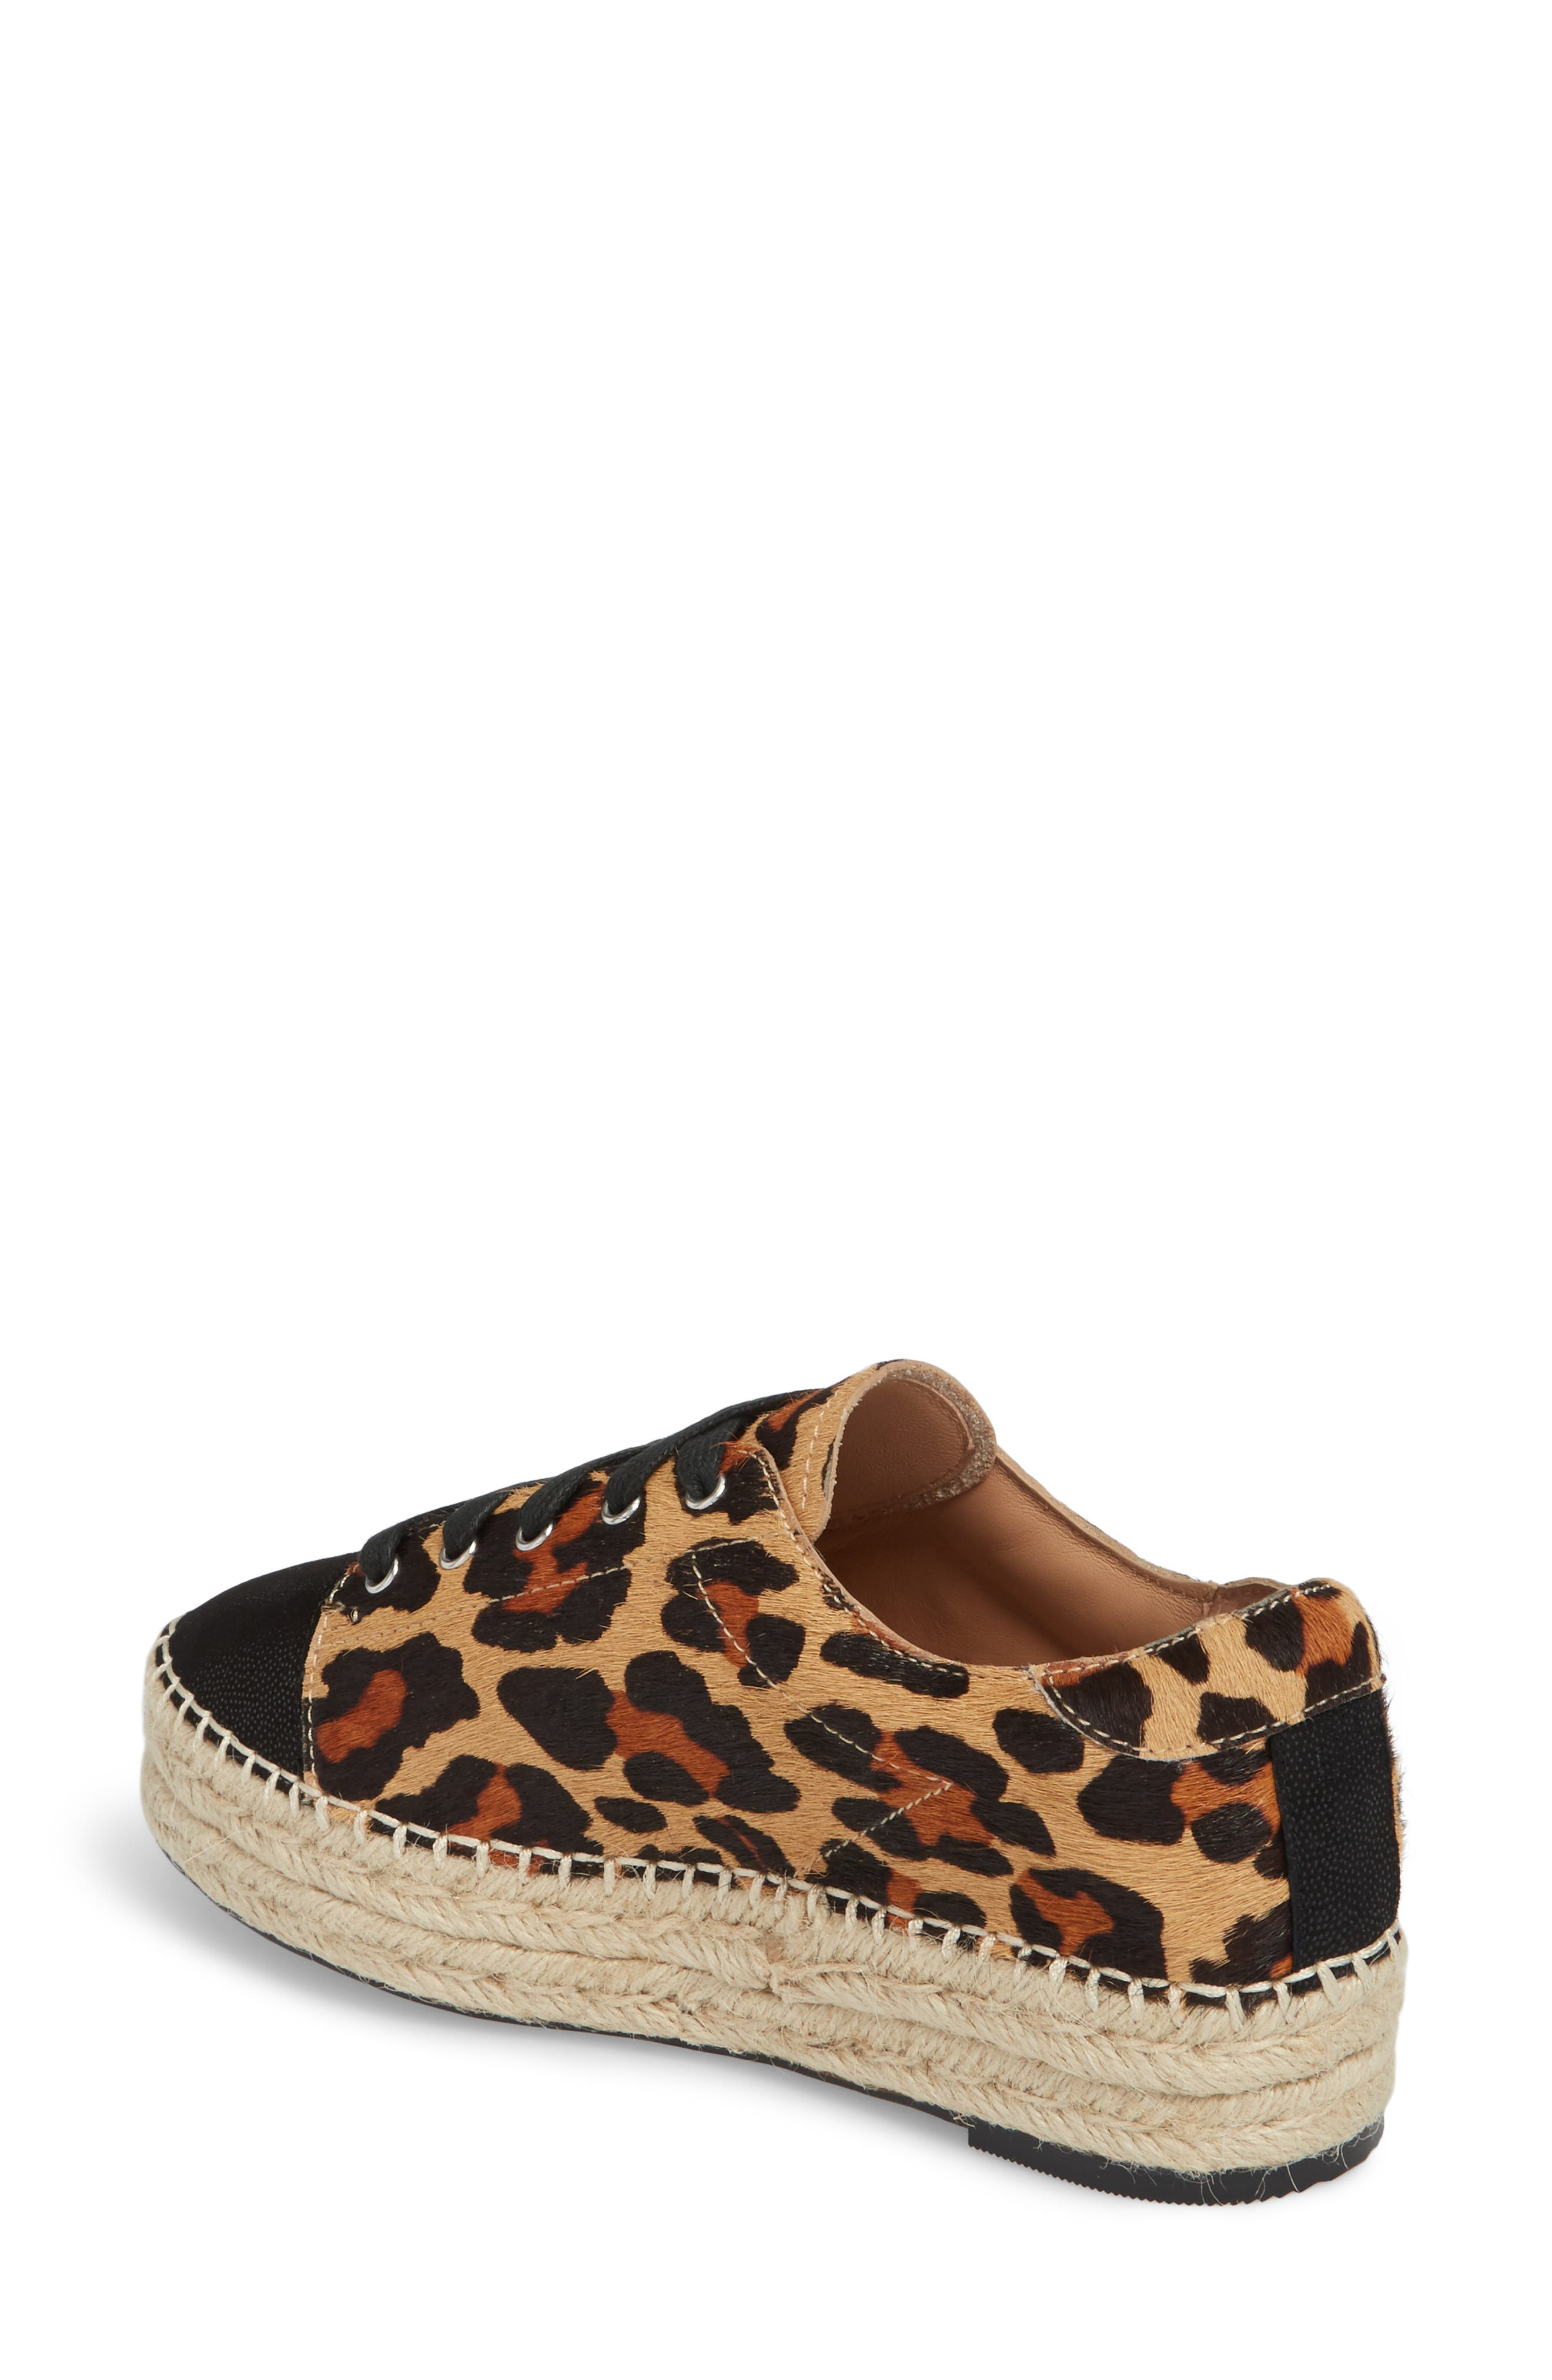 Sierra II Genuine Calf Hair Lace-Up Espadrille,                             Alternate thumbnail 2, color,                             212